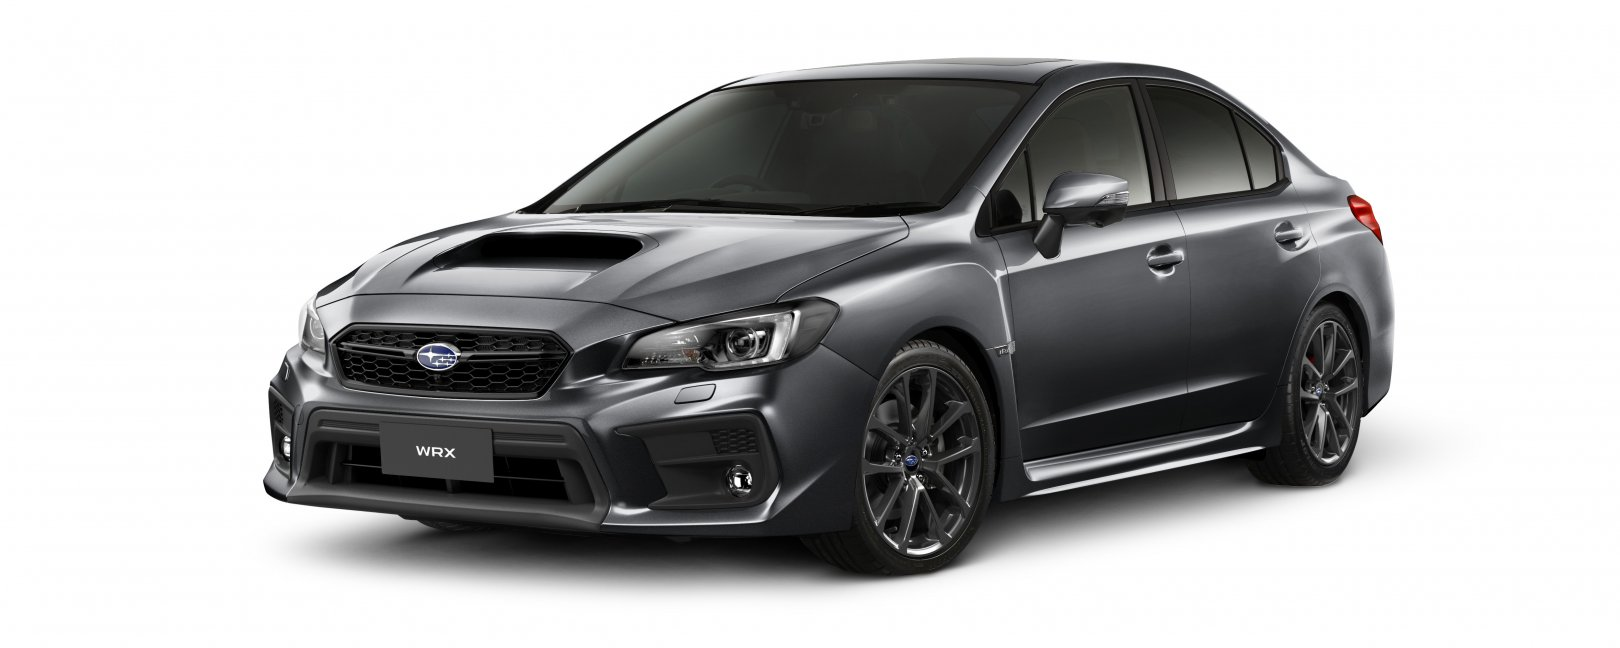 2020 WRX premium in dark grey